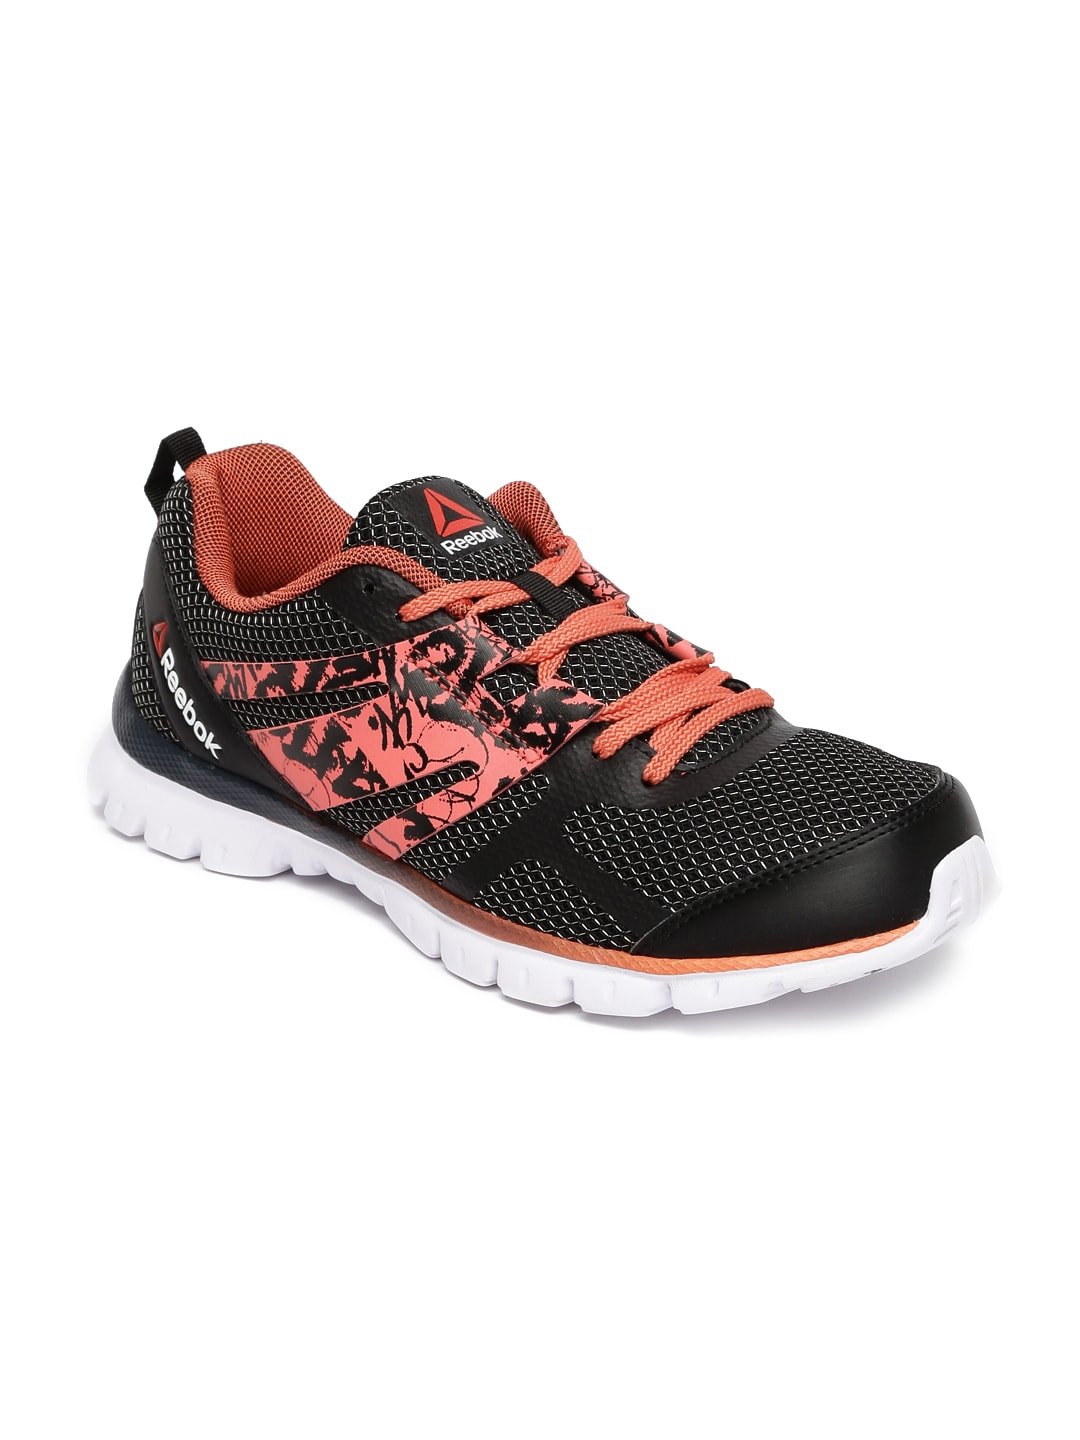 e1b1483e37ef Reebok bs6738 Women Black And Coral Red Speed Running Shoes- Price in India